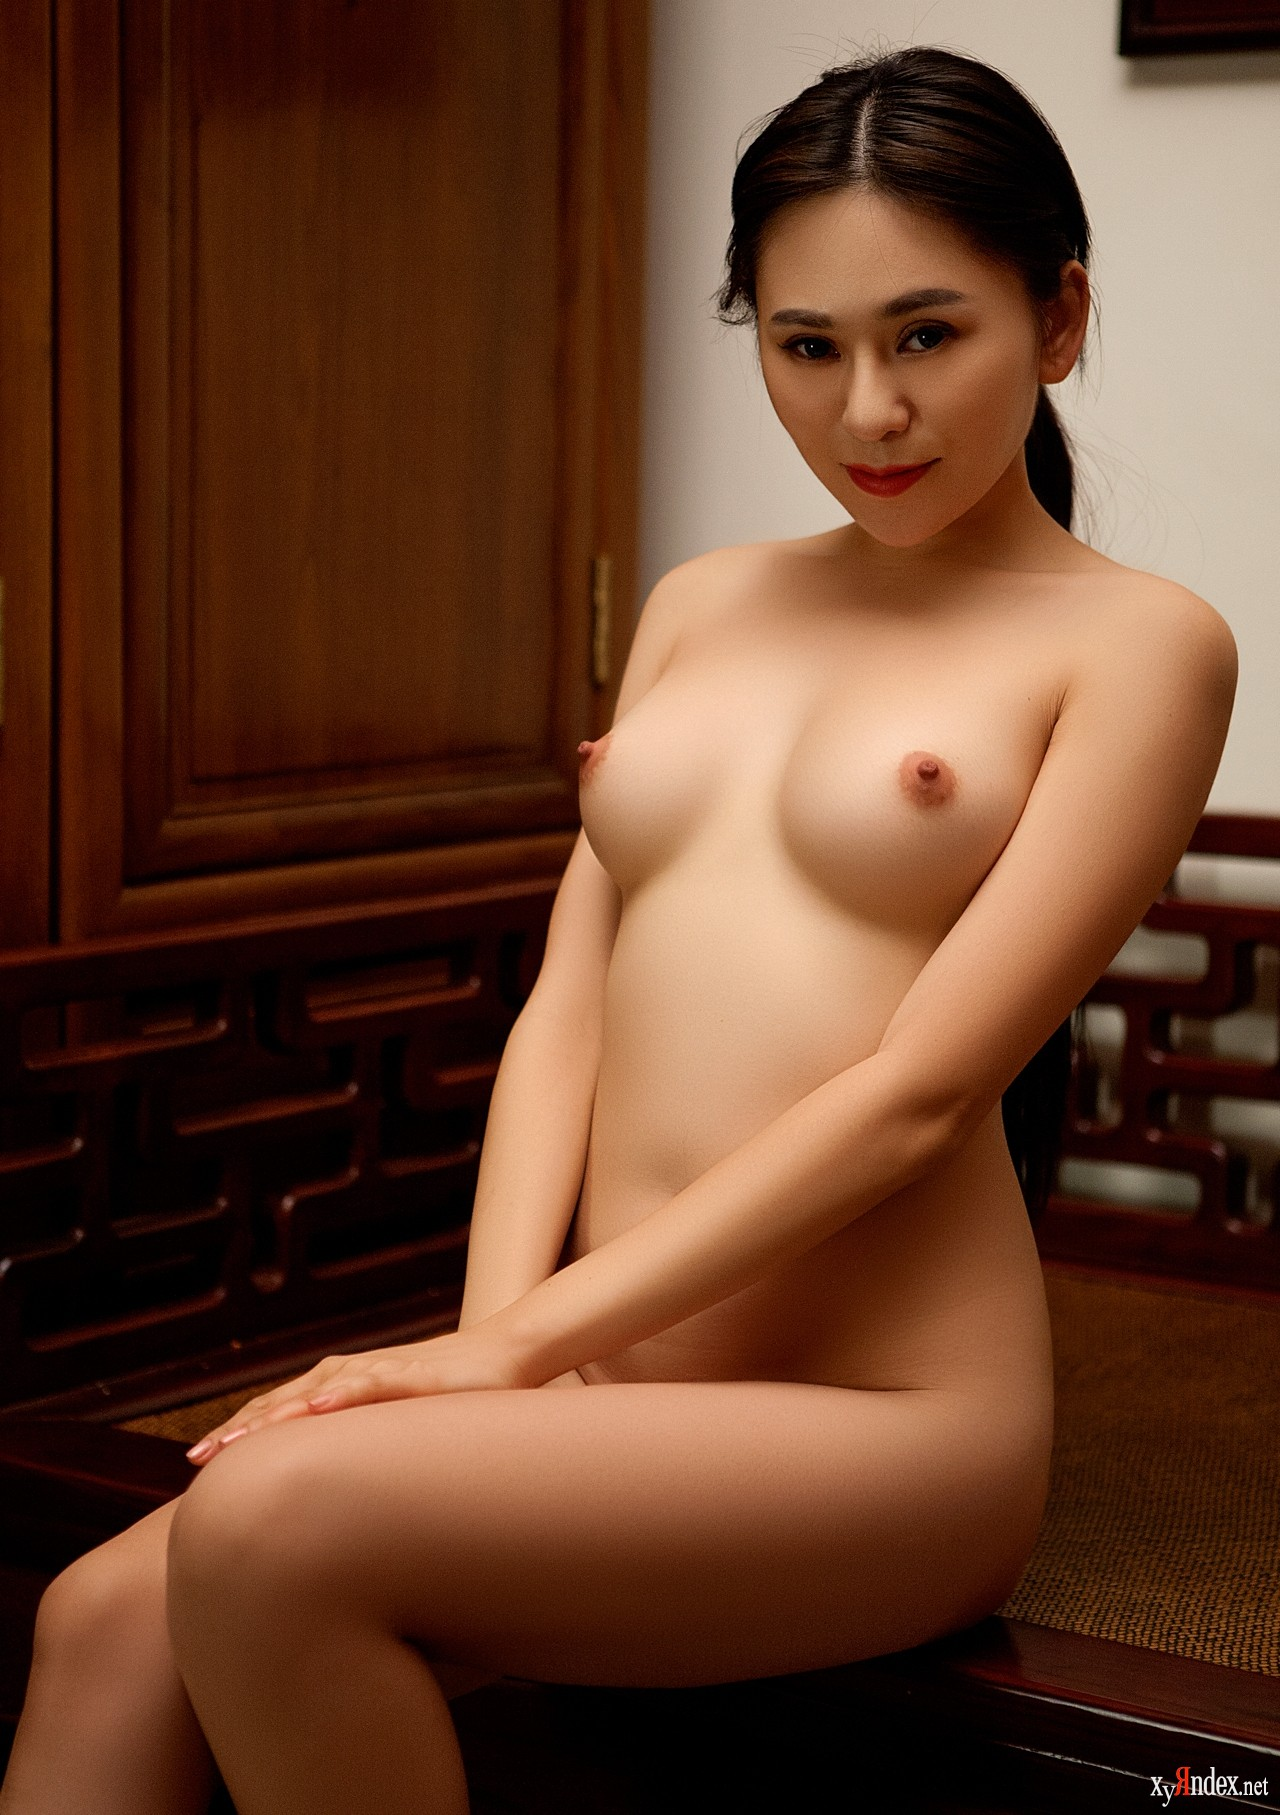 Beautiful nude indonesian girls